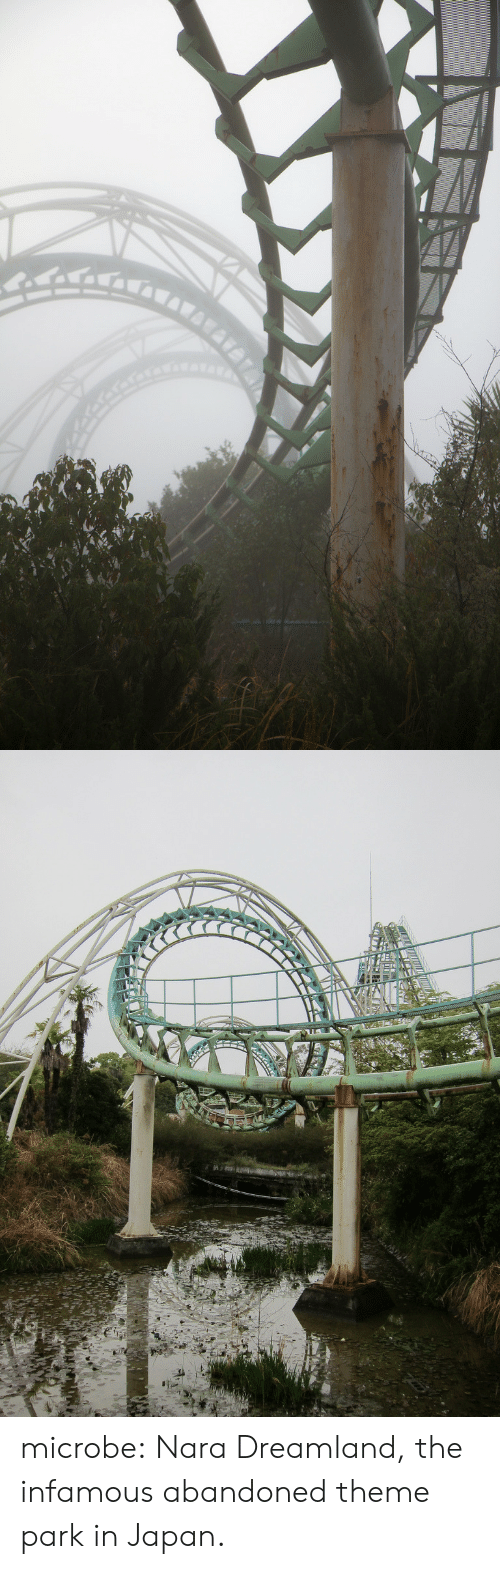 cad: microbe: Nara Dreamland, the infamous abandoned theme park in Japan.